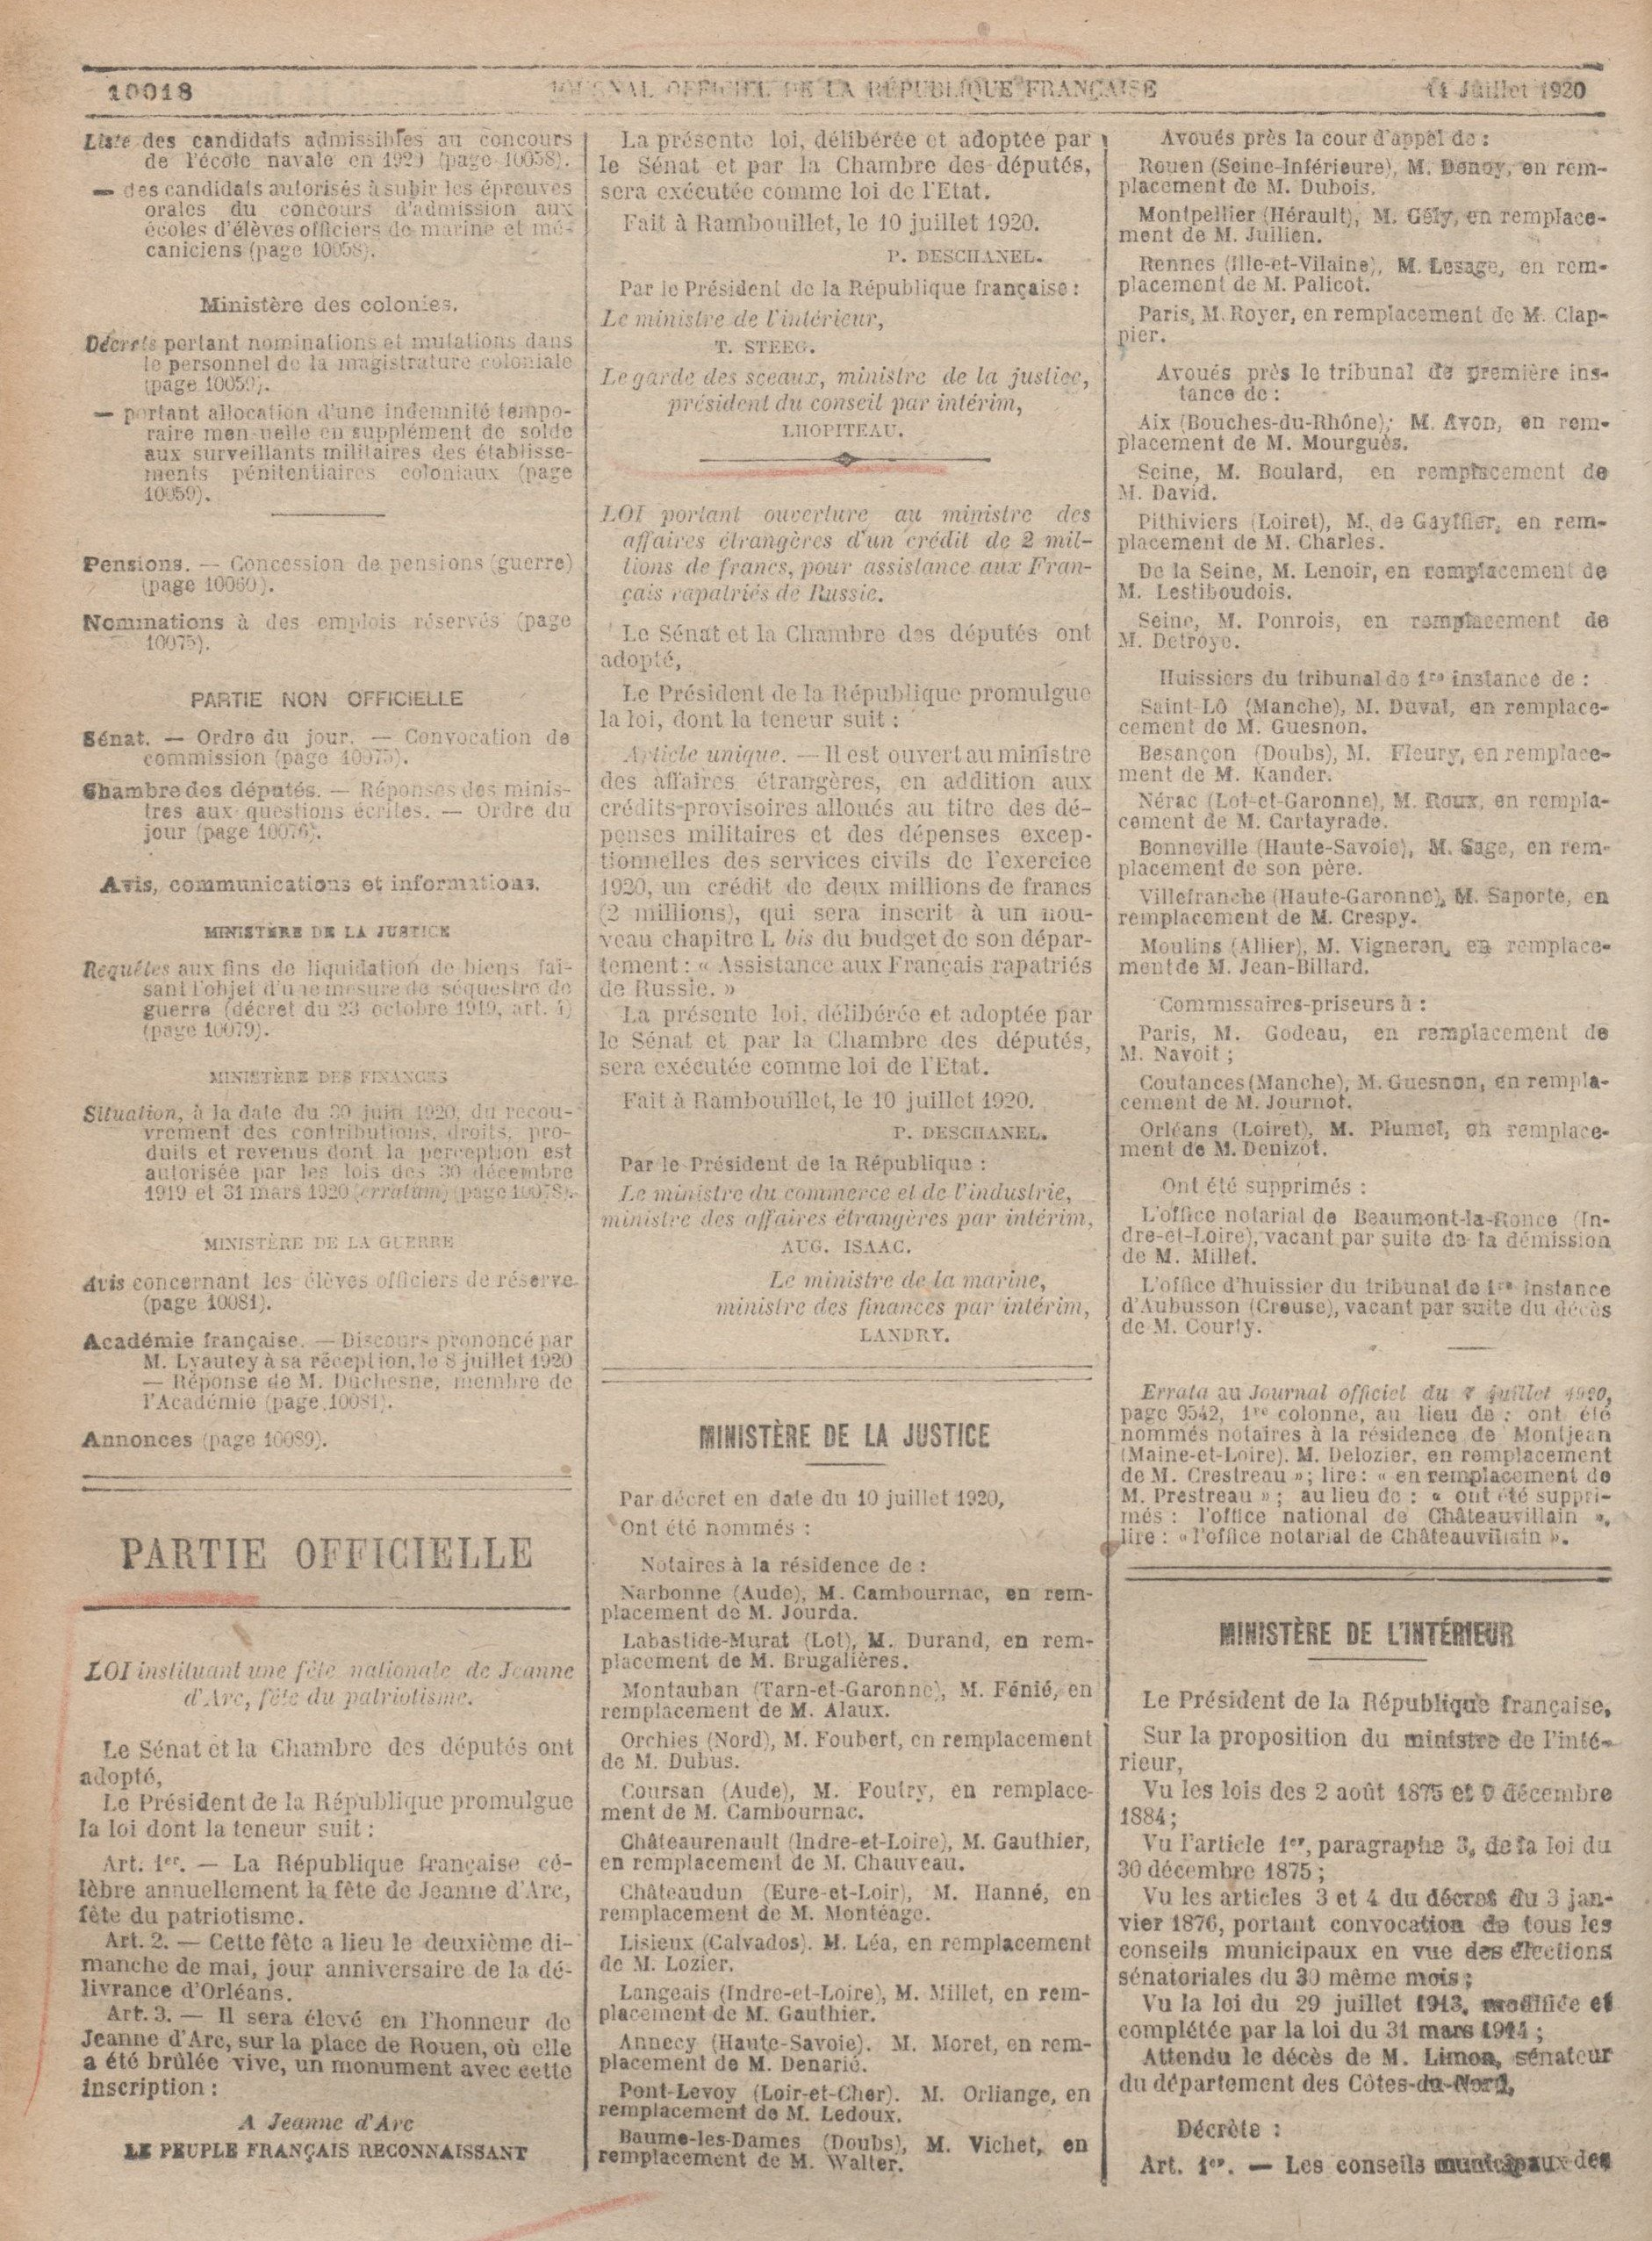 Journal officiel du 14 juillet 1920, page 10018